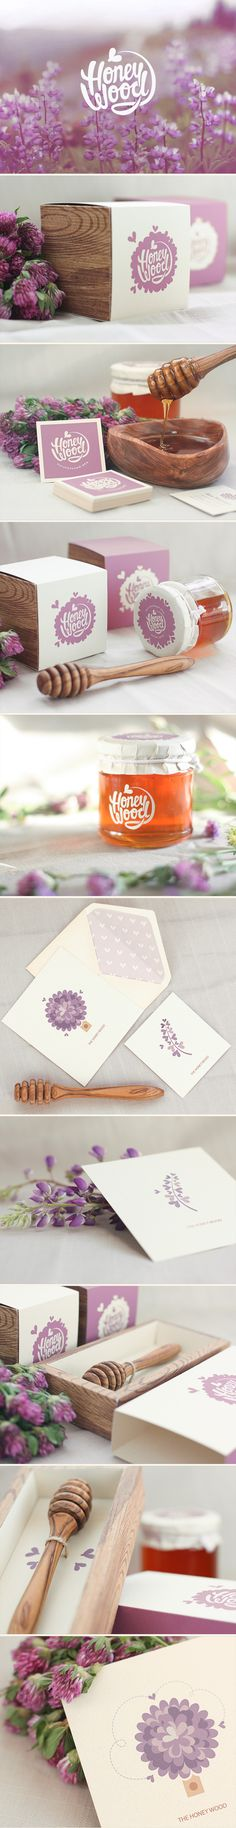 Honey Wood Branding